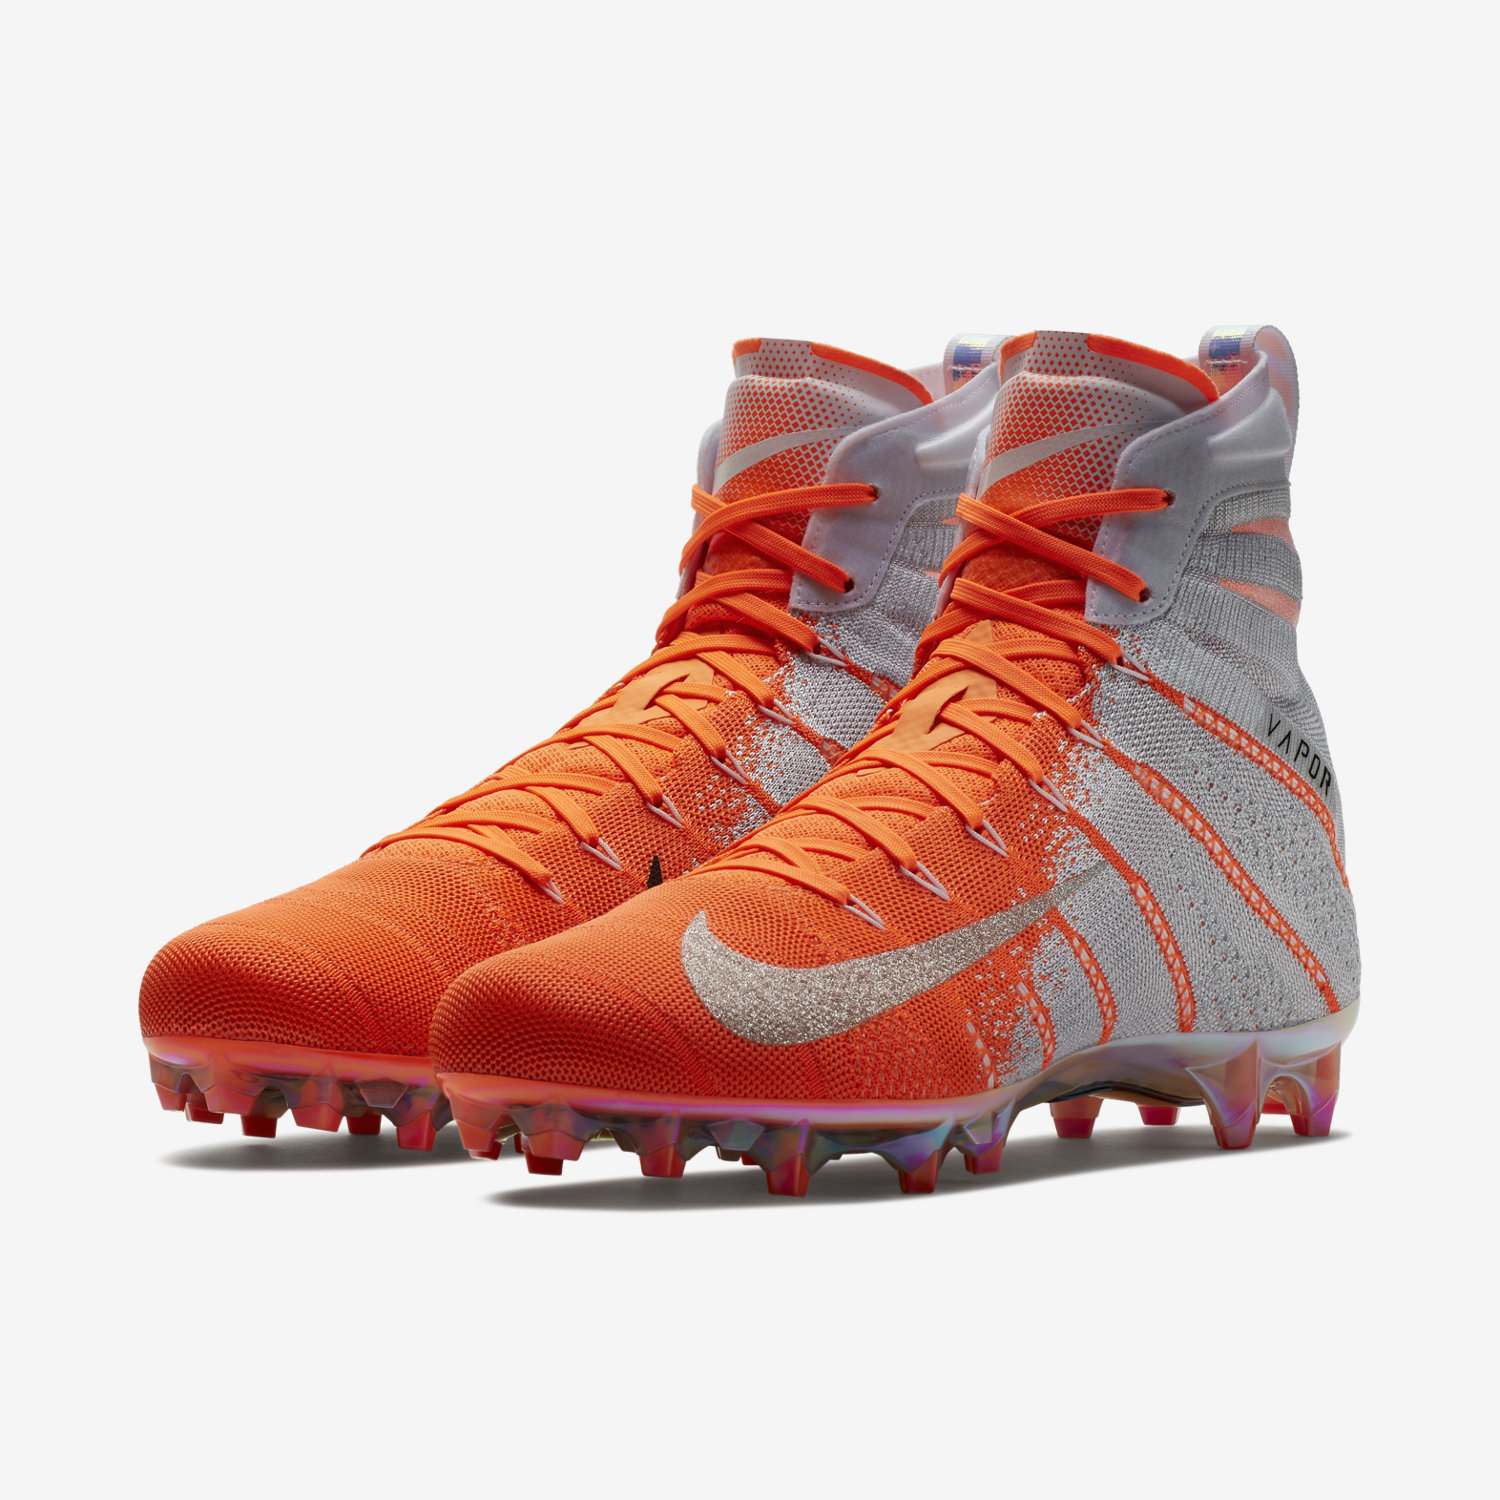 nike vapor untouchable 3 elite football cleat nikecom